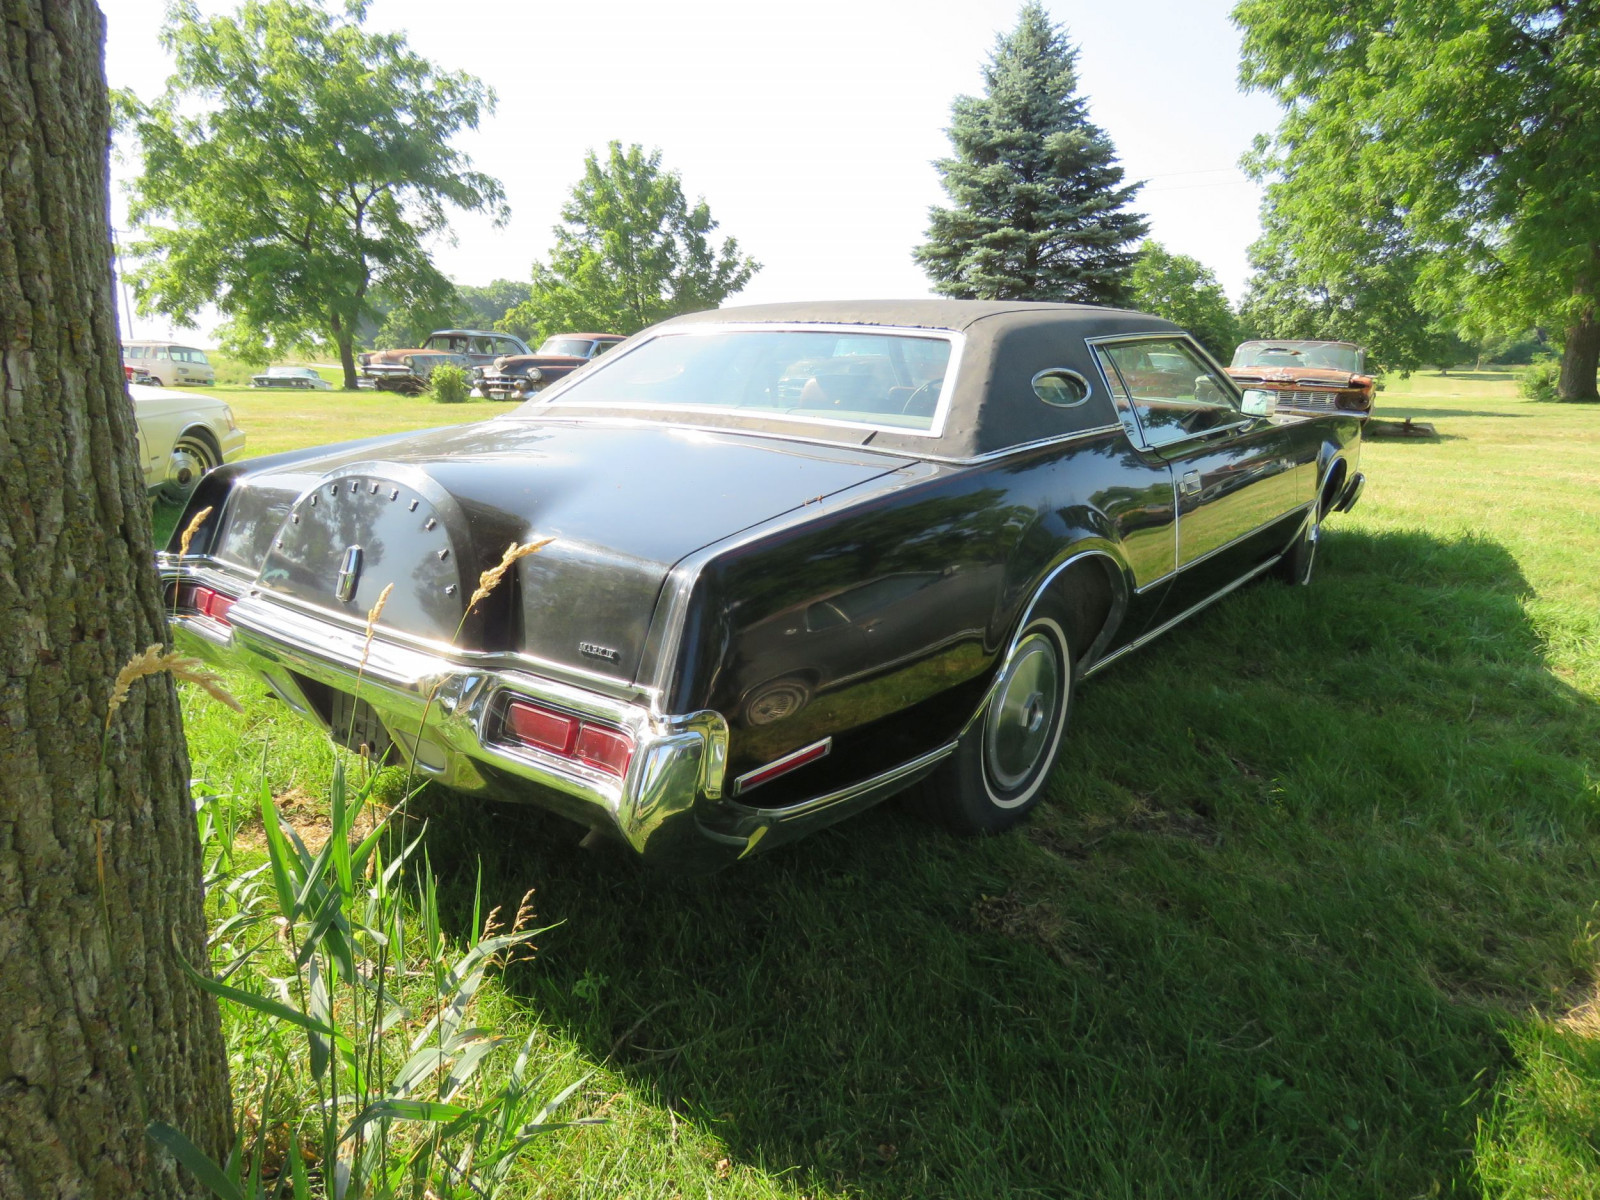 1973 Lincoln Continental Cartier Coupe - Image 7